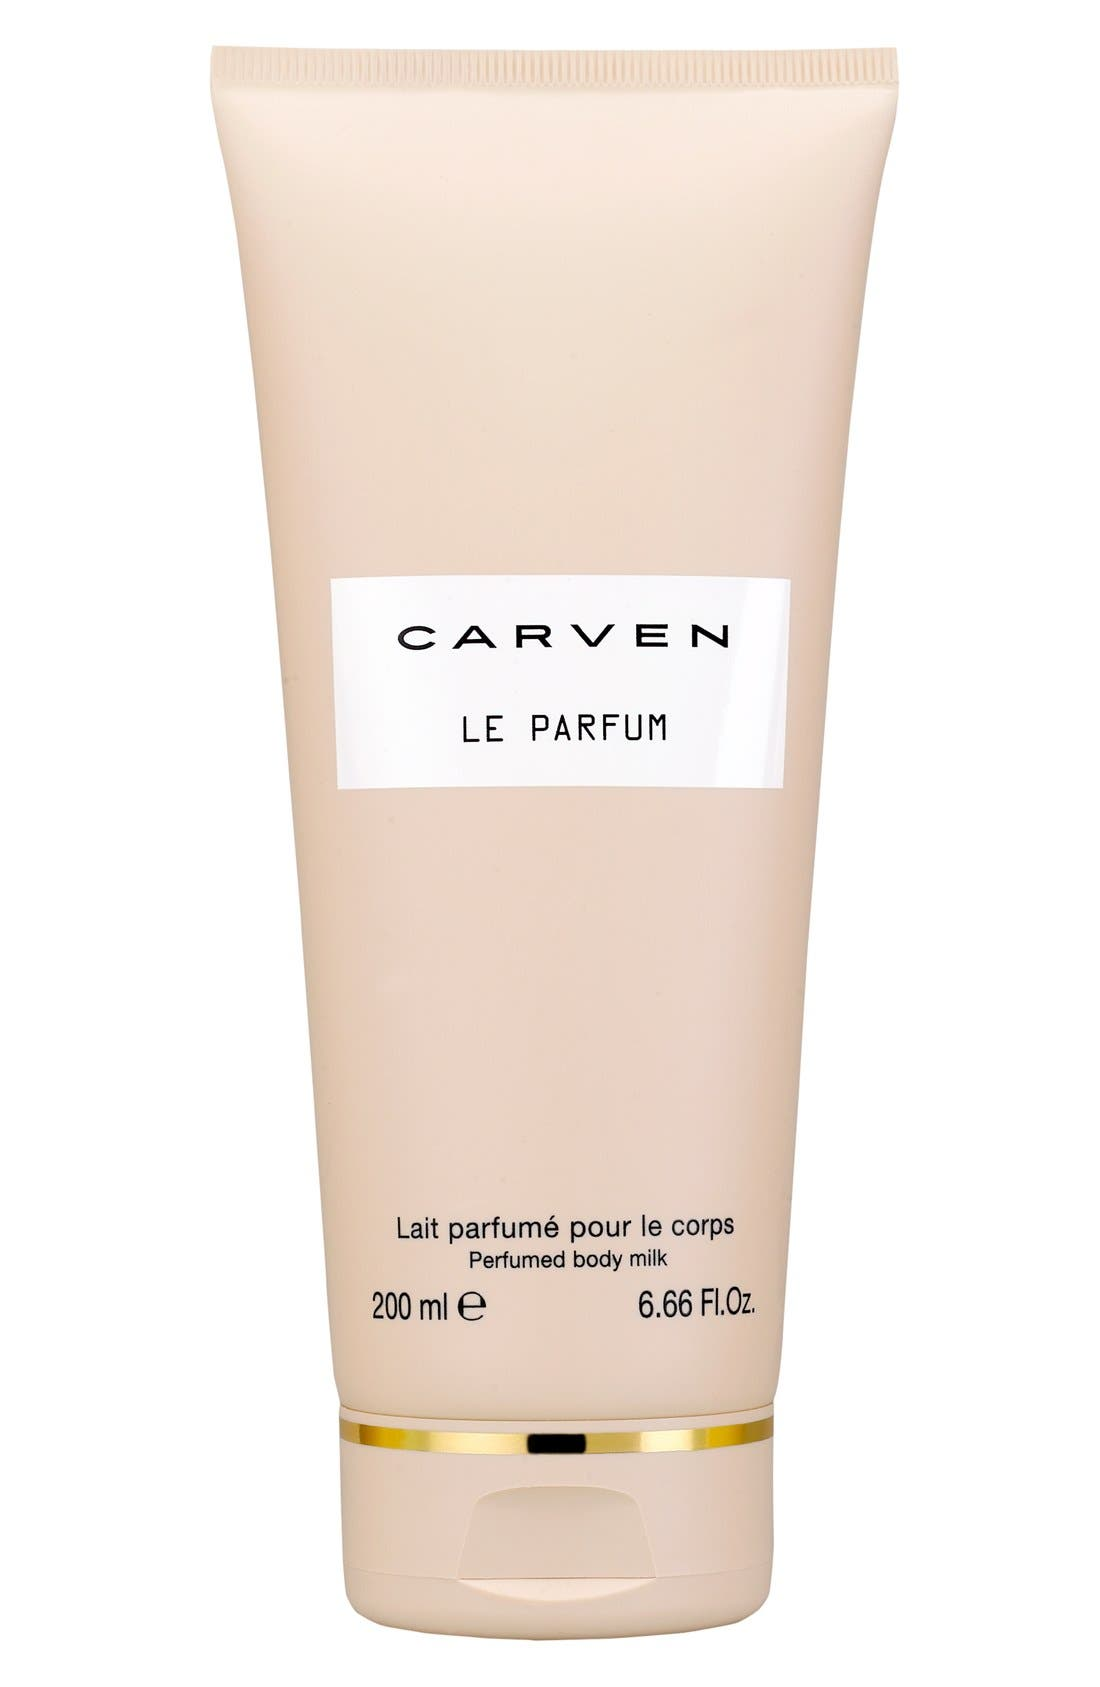 Carven 'Le Parfum' Perfumed Body Milk